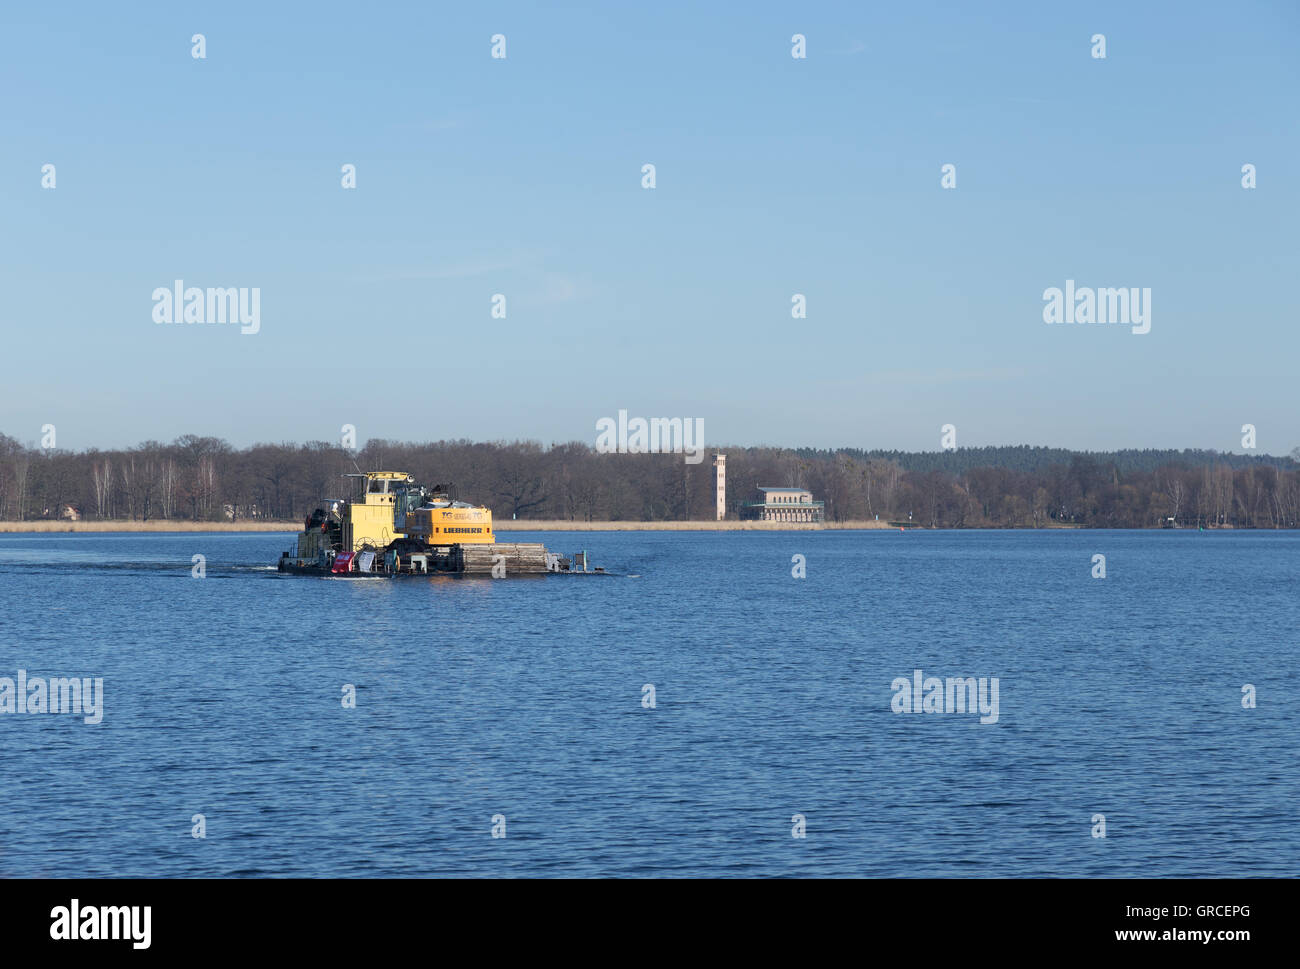 Excavator Is Carried On The Water With A Towboat - Stock Image